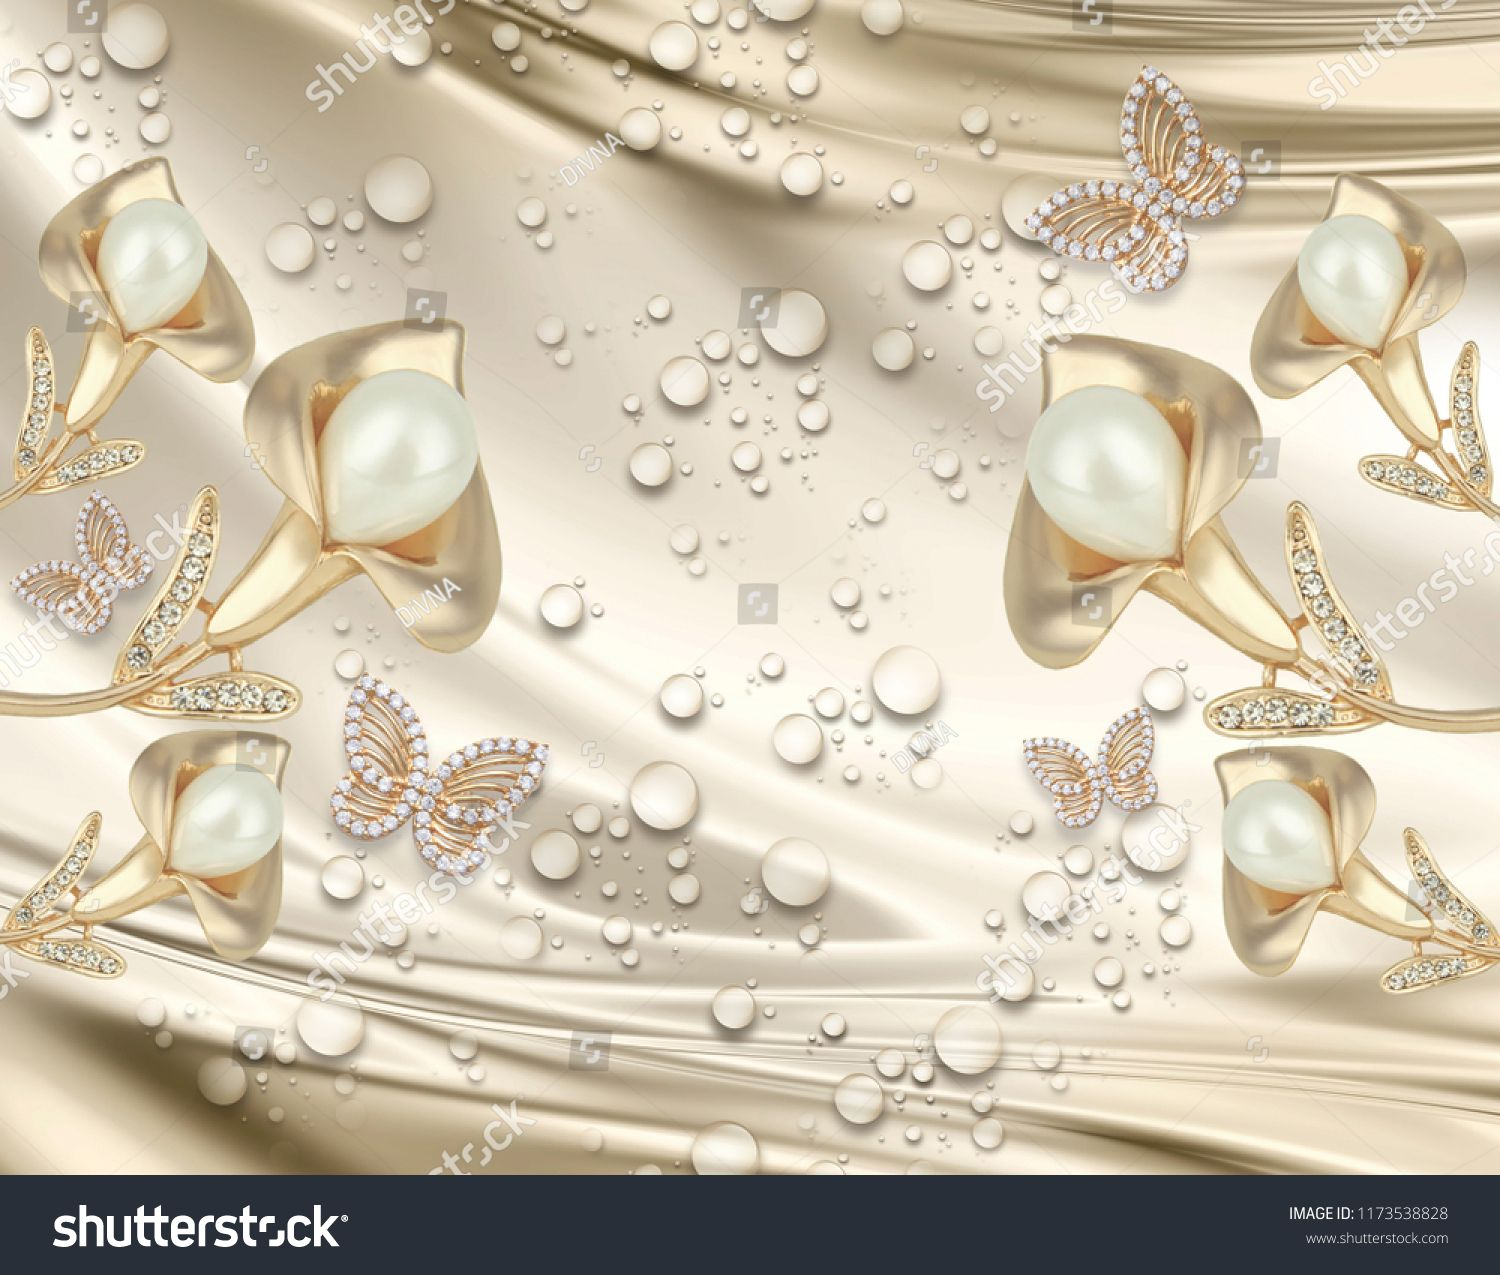 3d Background Calla Lily And Butterfly Water Drop Silk Gold And Pearls Gold Jewelry Wallpap Gold Jewellery Wallpaper White Gold Jewelry Modern Gold Jewelry